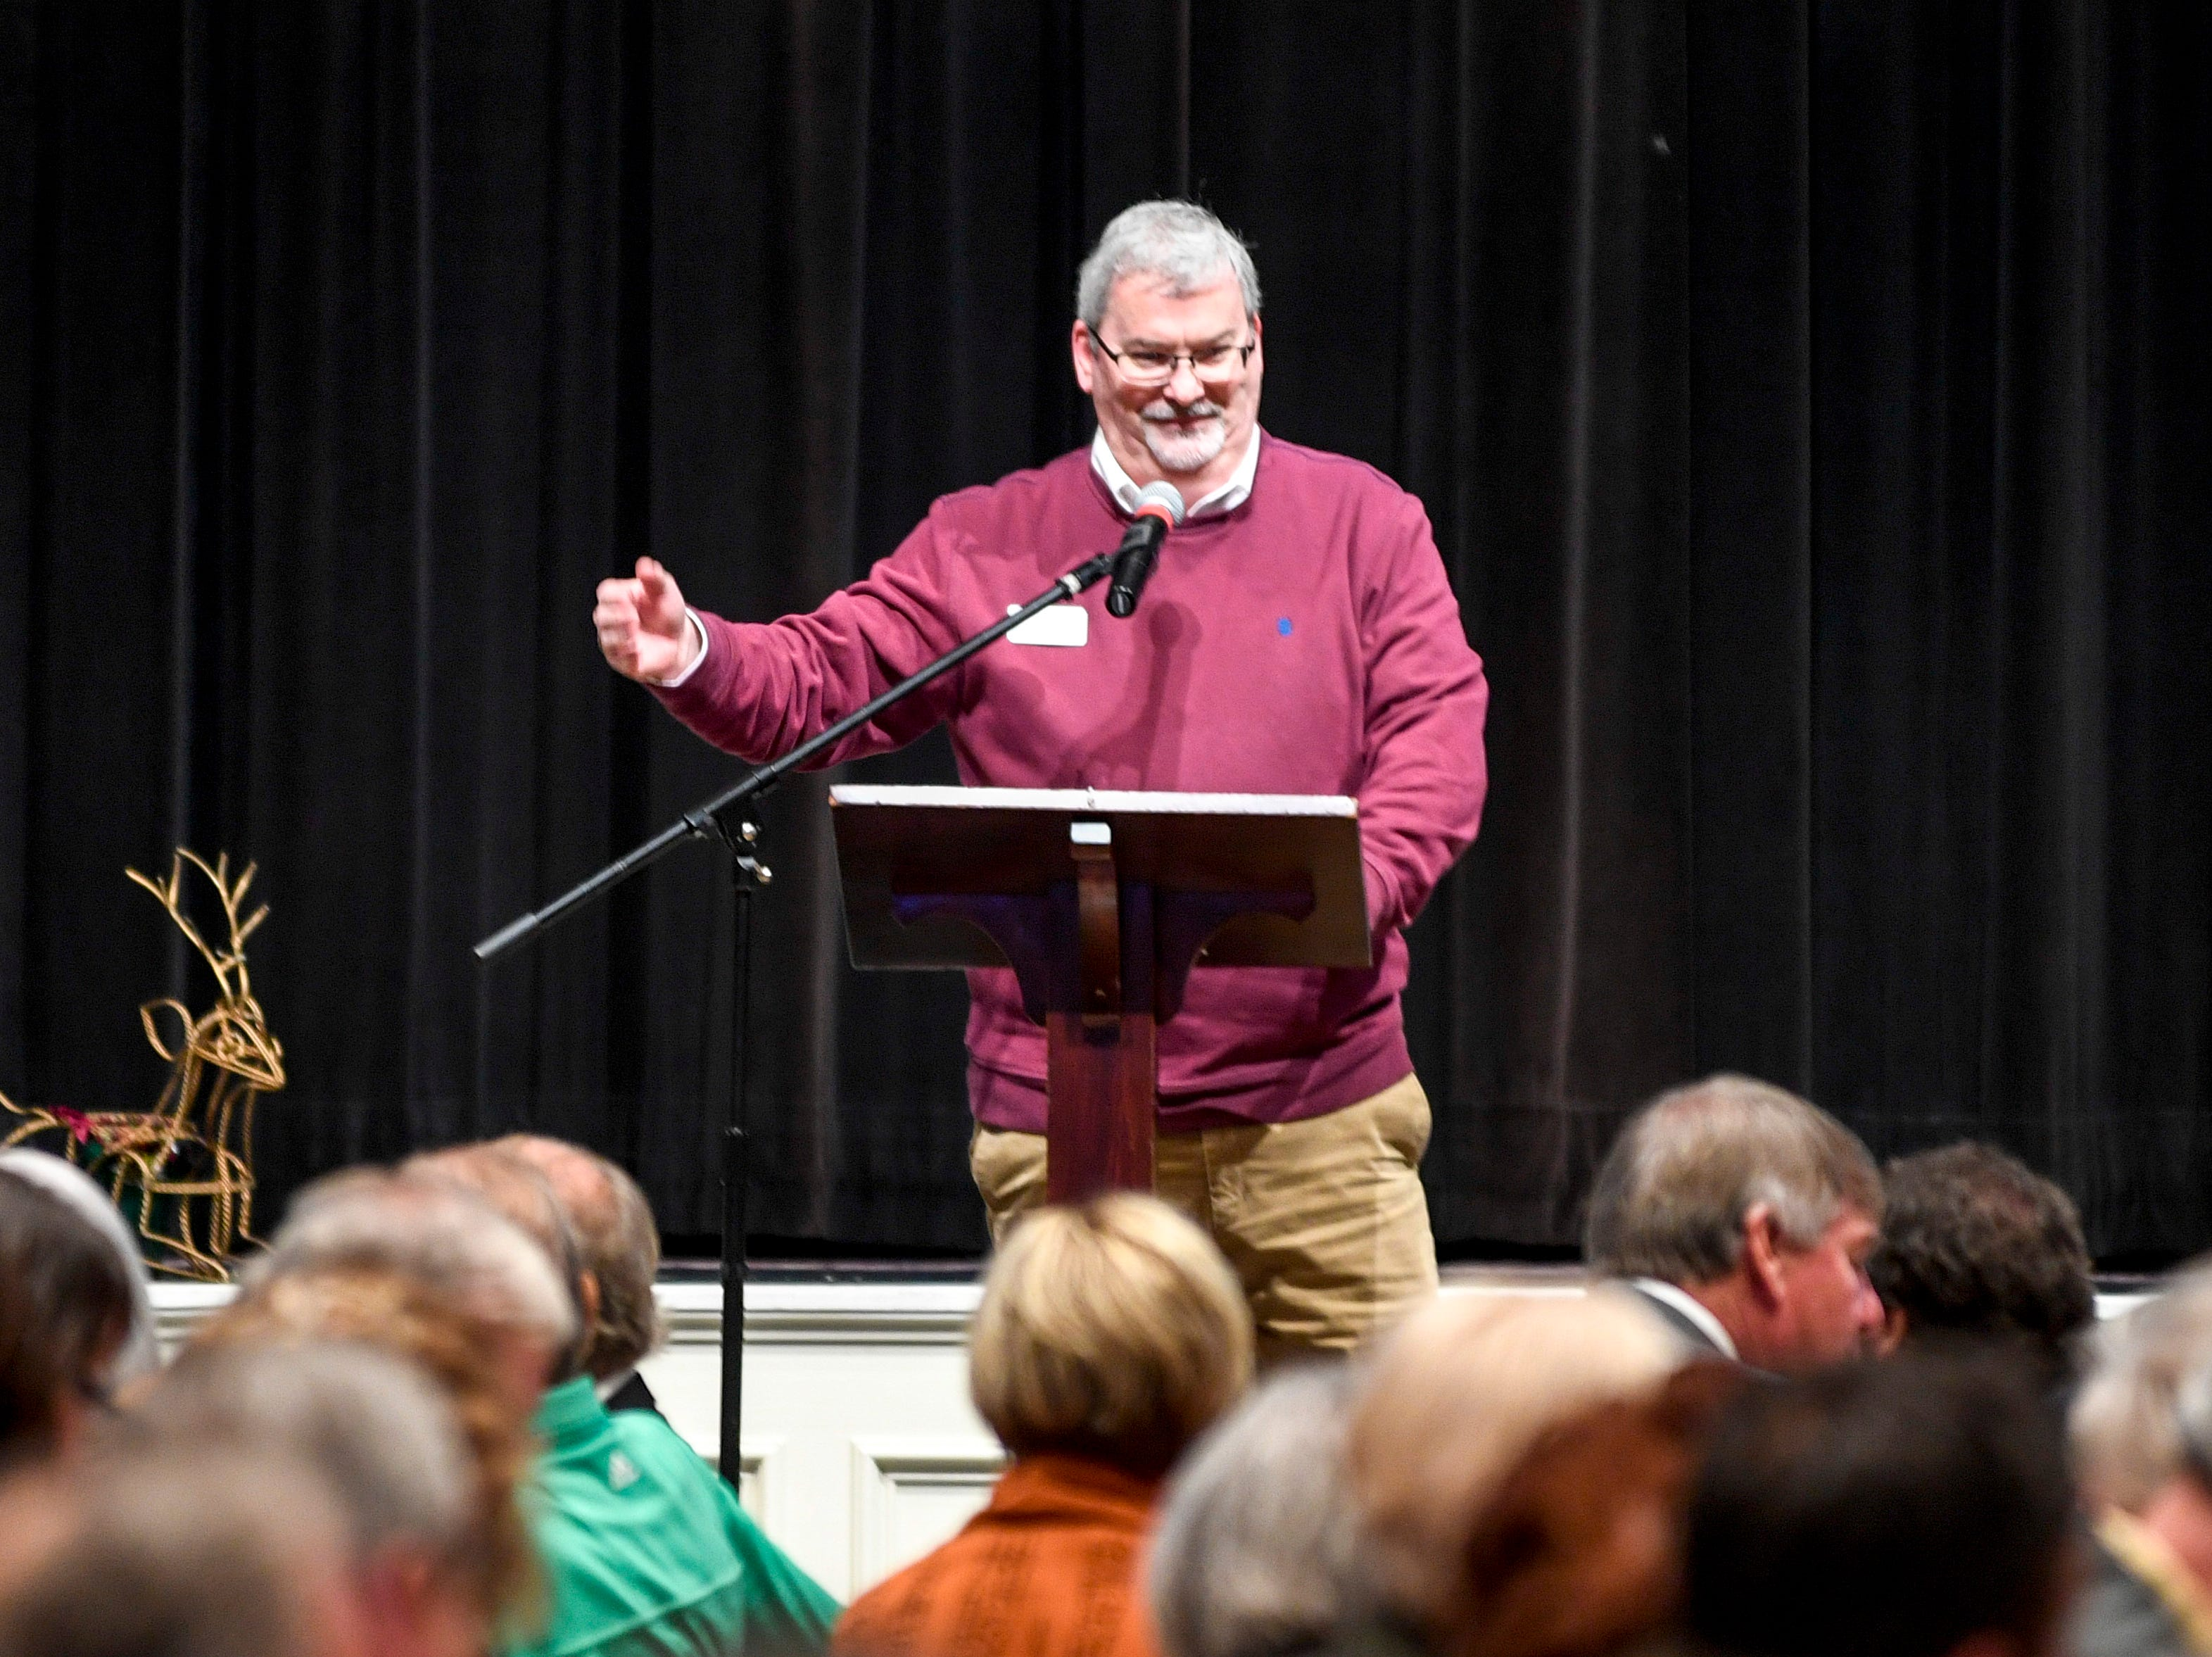 Senior Pastor of the church Sky McCracken speaks at the podium to welcome guests during the monthly First Friday Forum at First United Methodist Church in Jackson, Tenn., on Friday, Jan. 4, 2019.